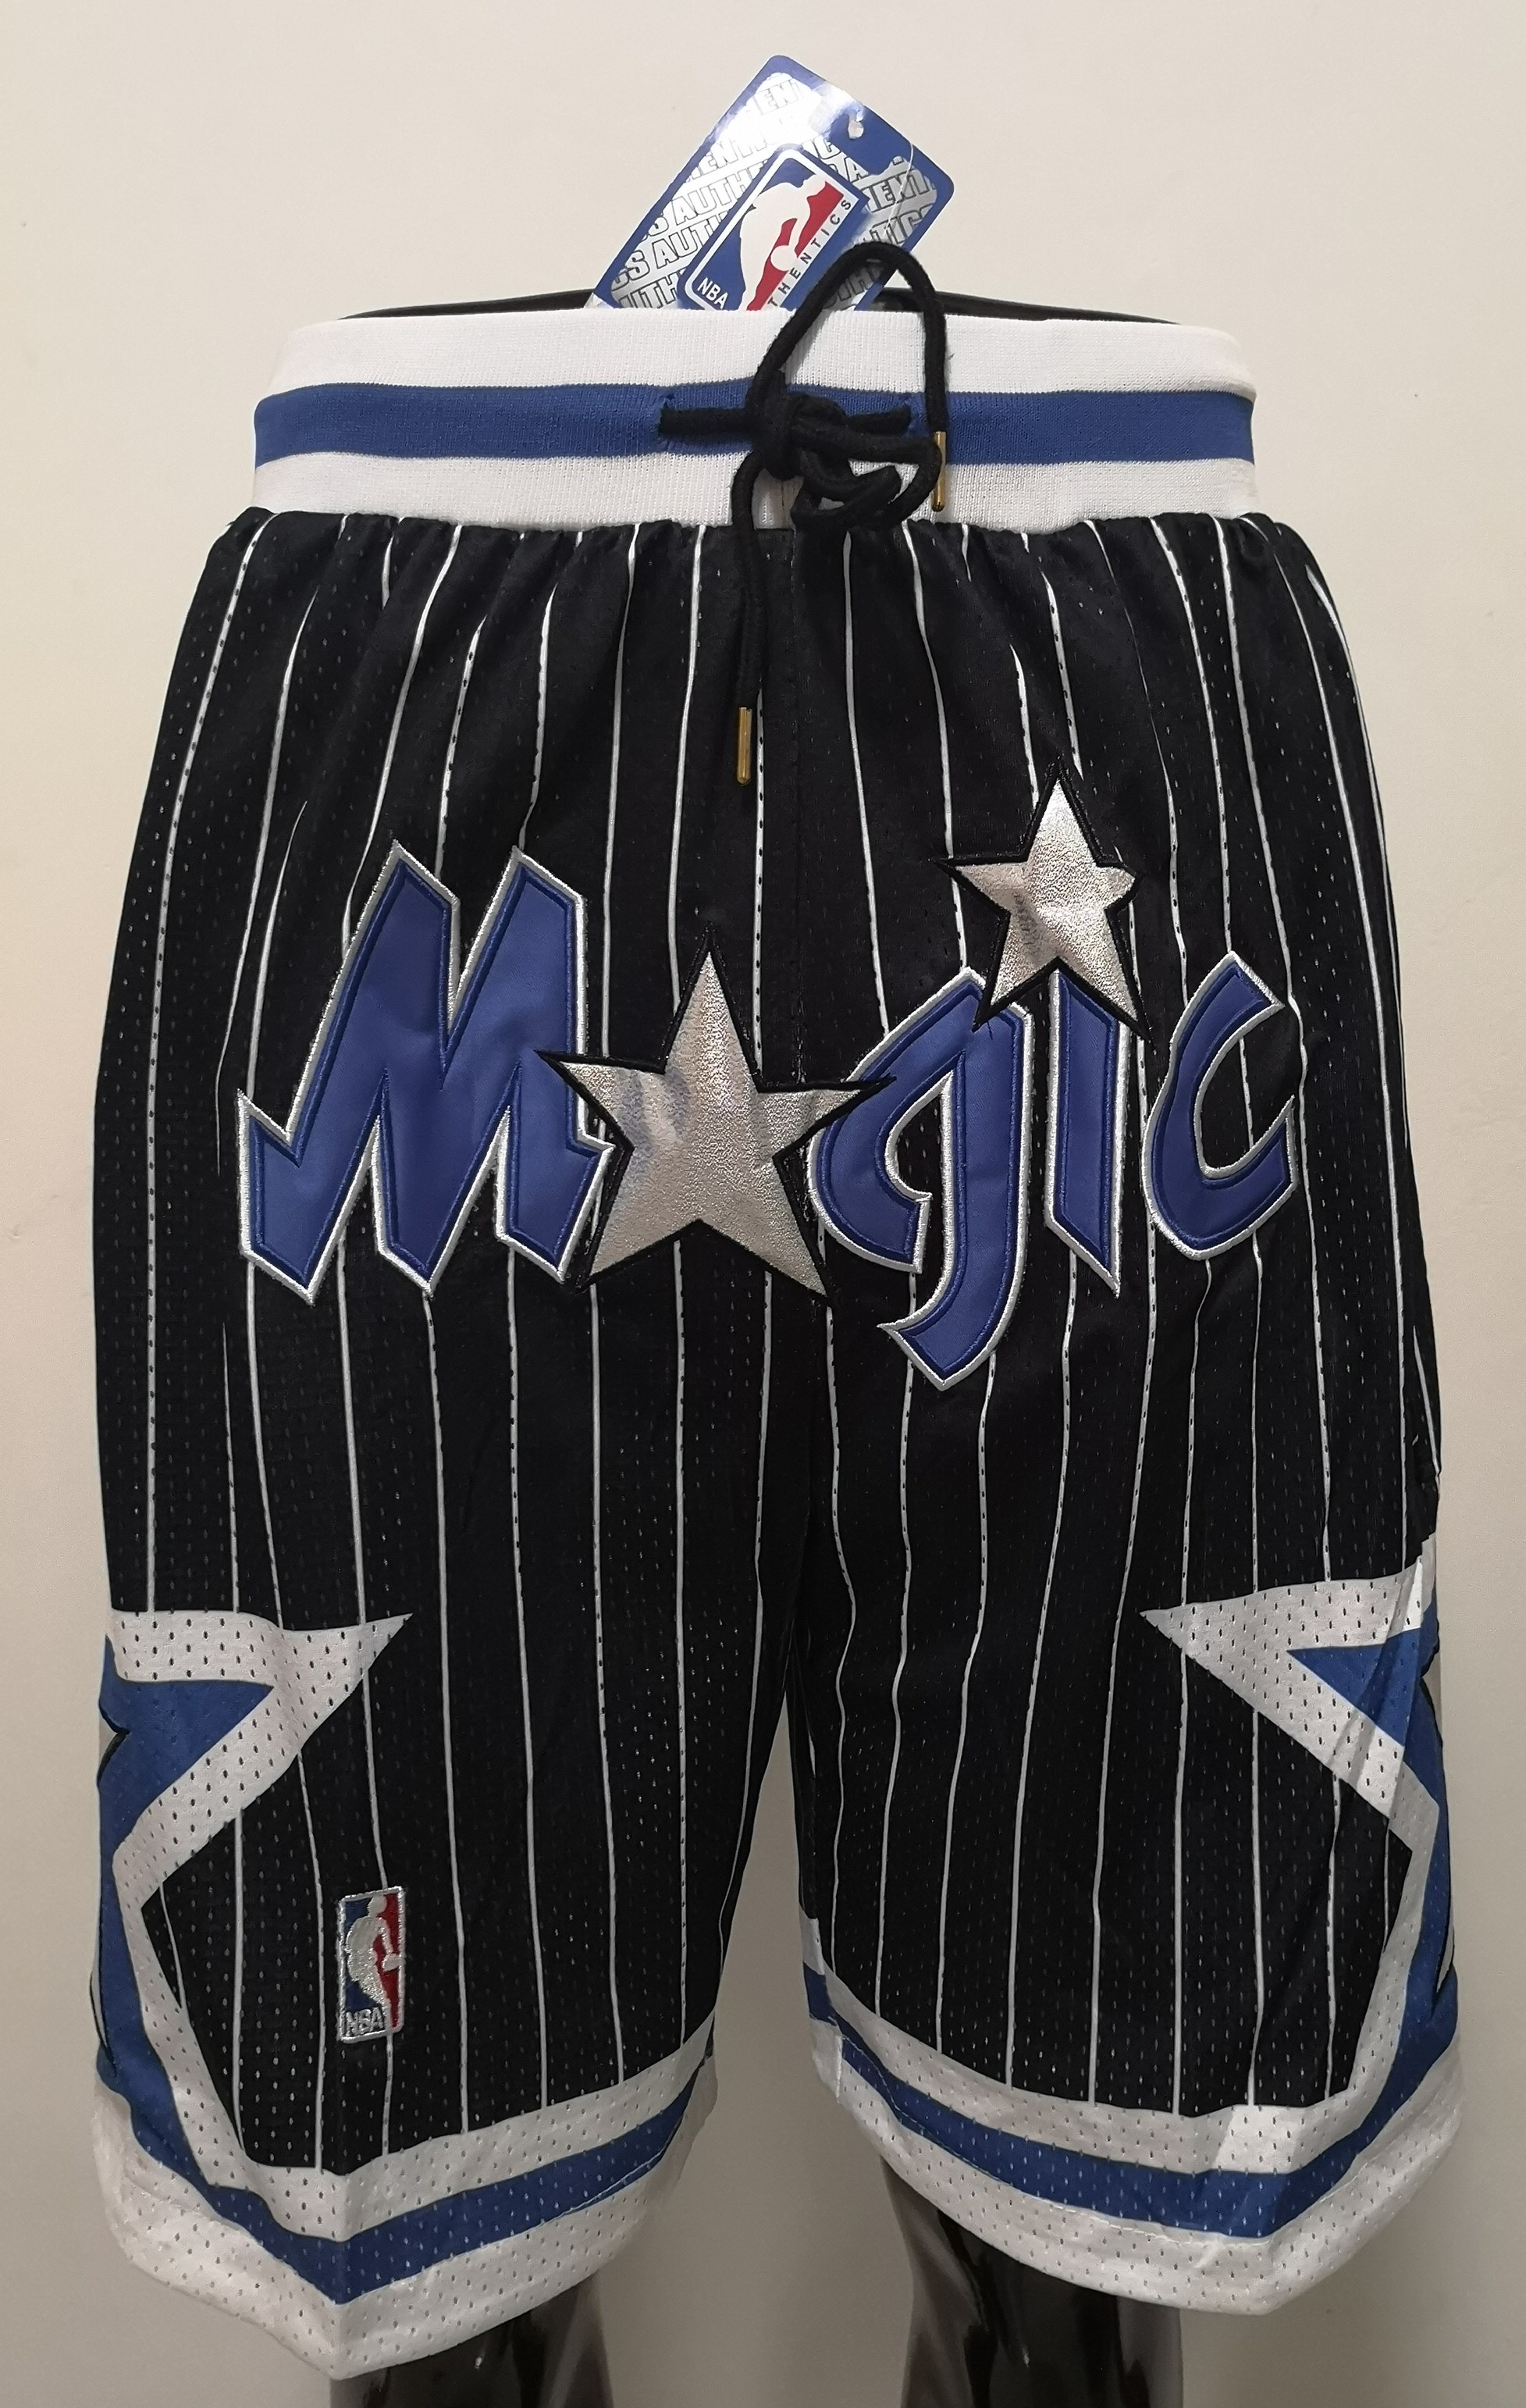 2020 Men NBA Orlando Magic 01 shorts